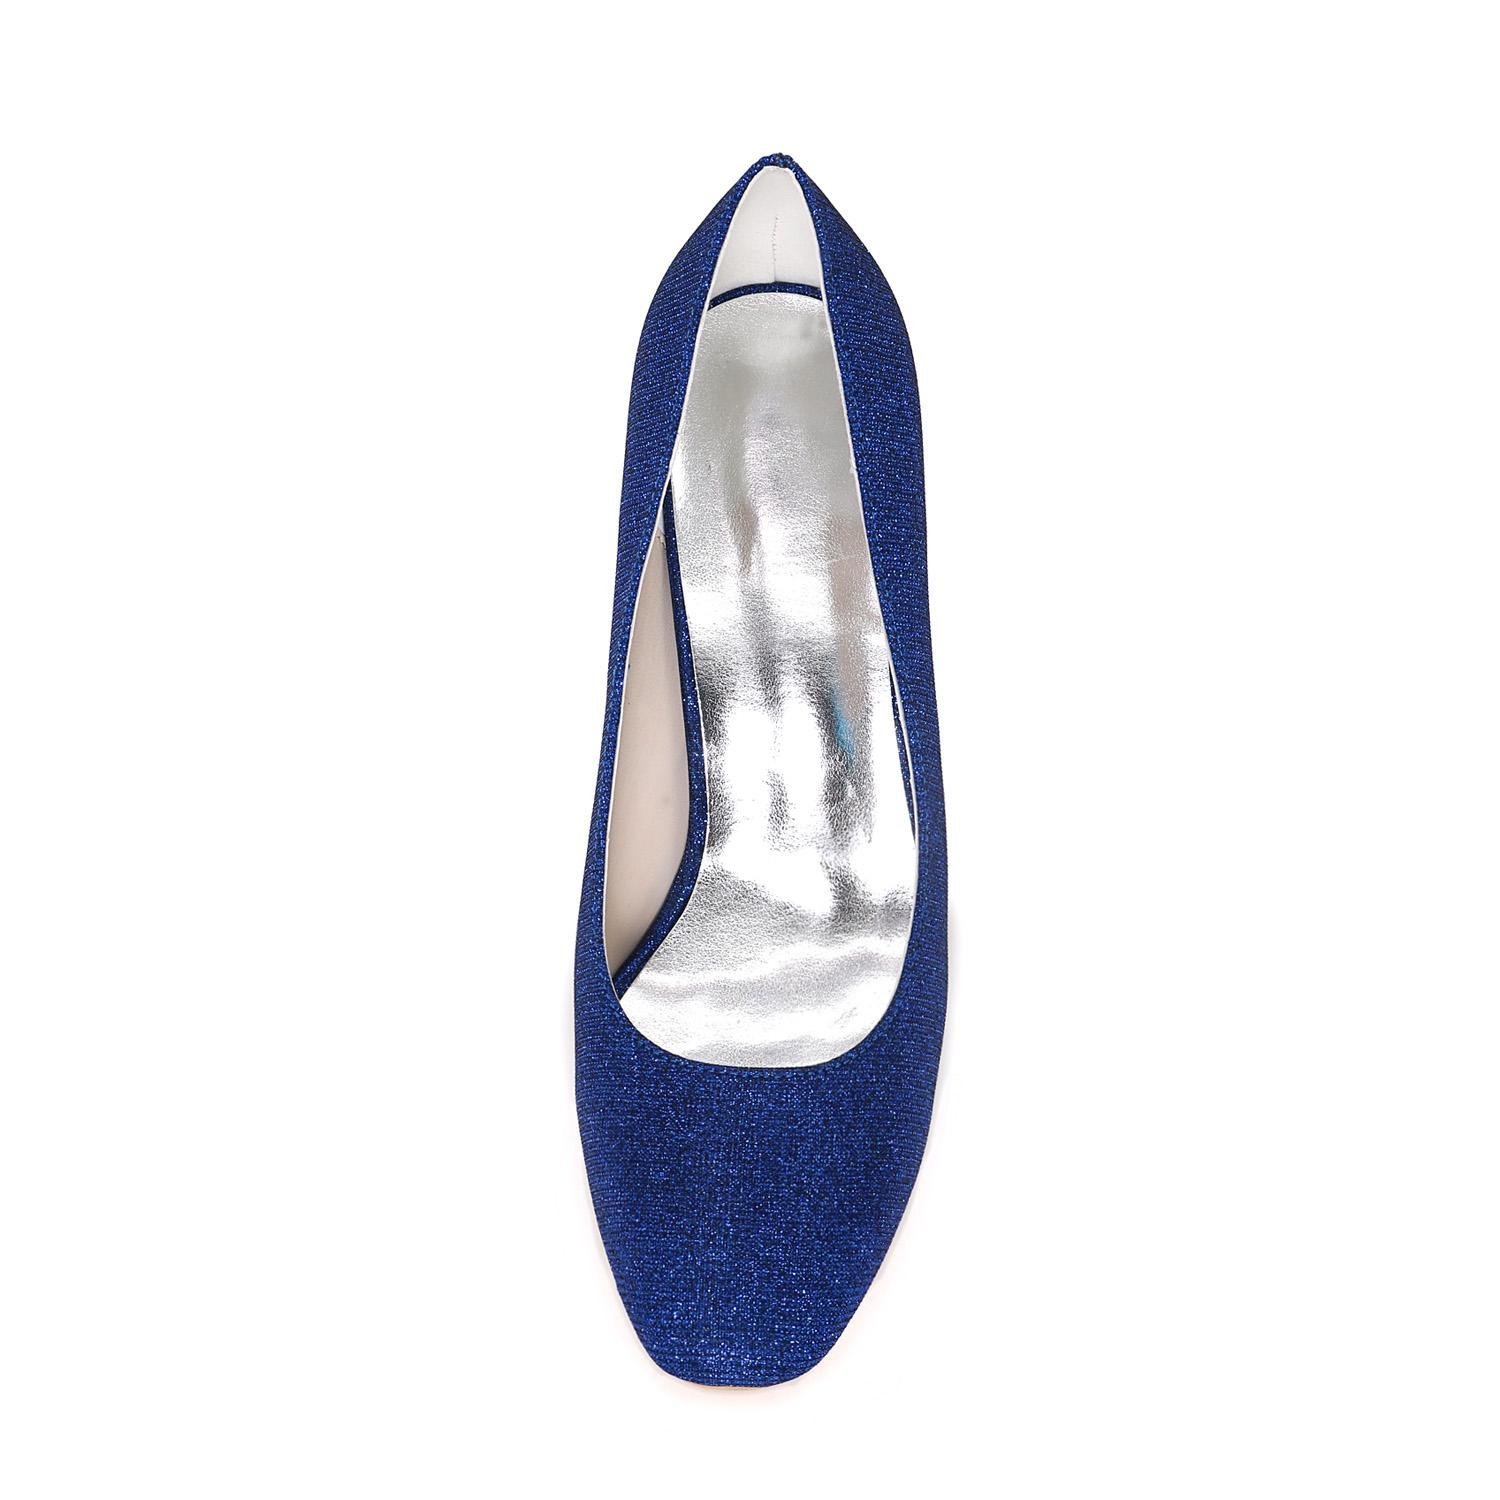 83637d53f223 ... Women s Wedding Shoes Shoes Shoes Heels   Platform Heels Wedding    party and more colors available ...